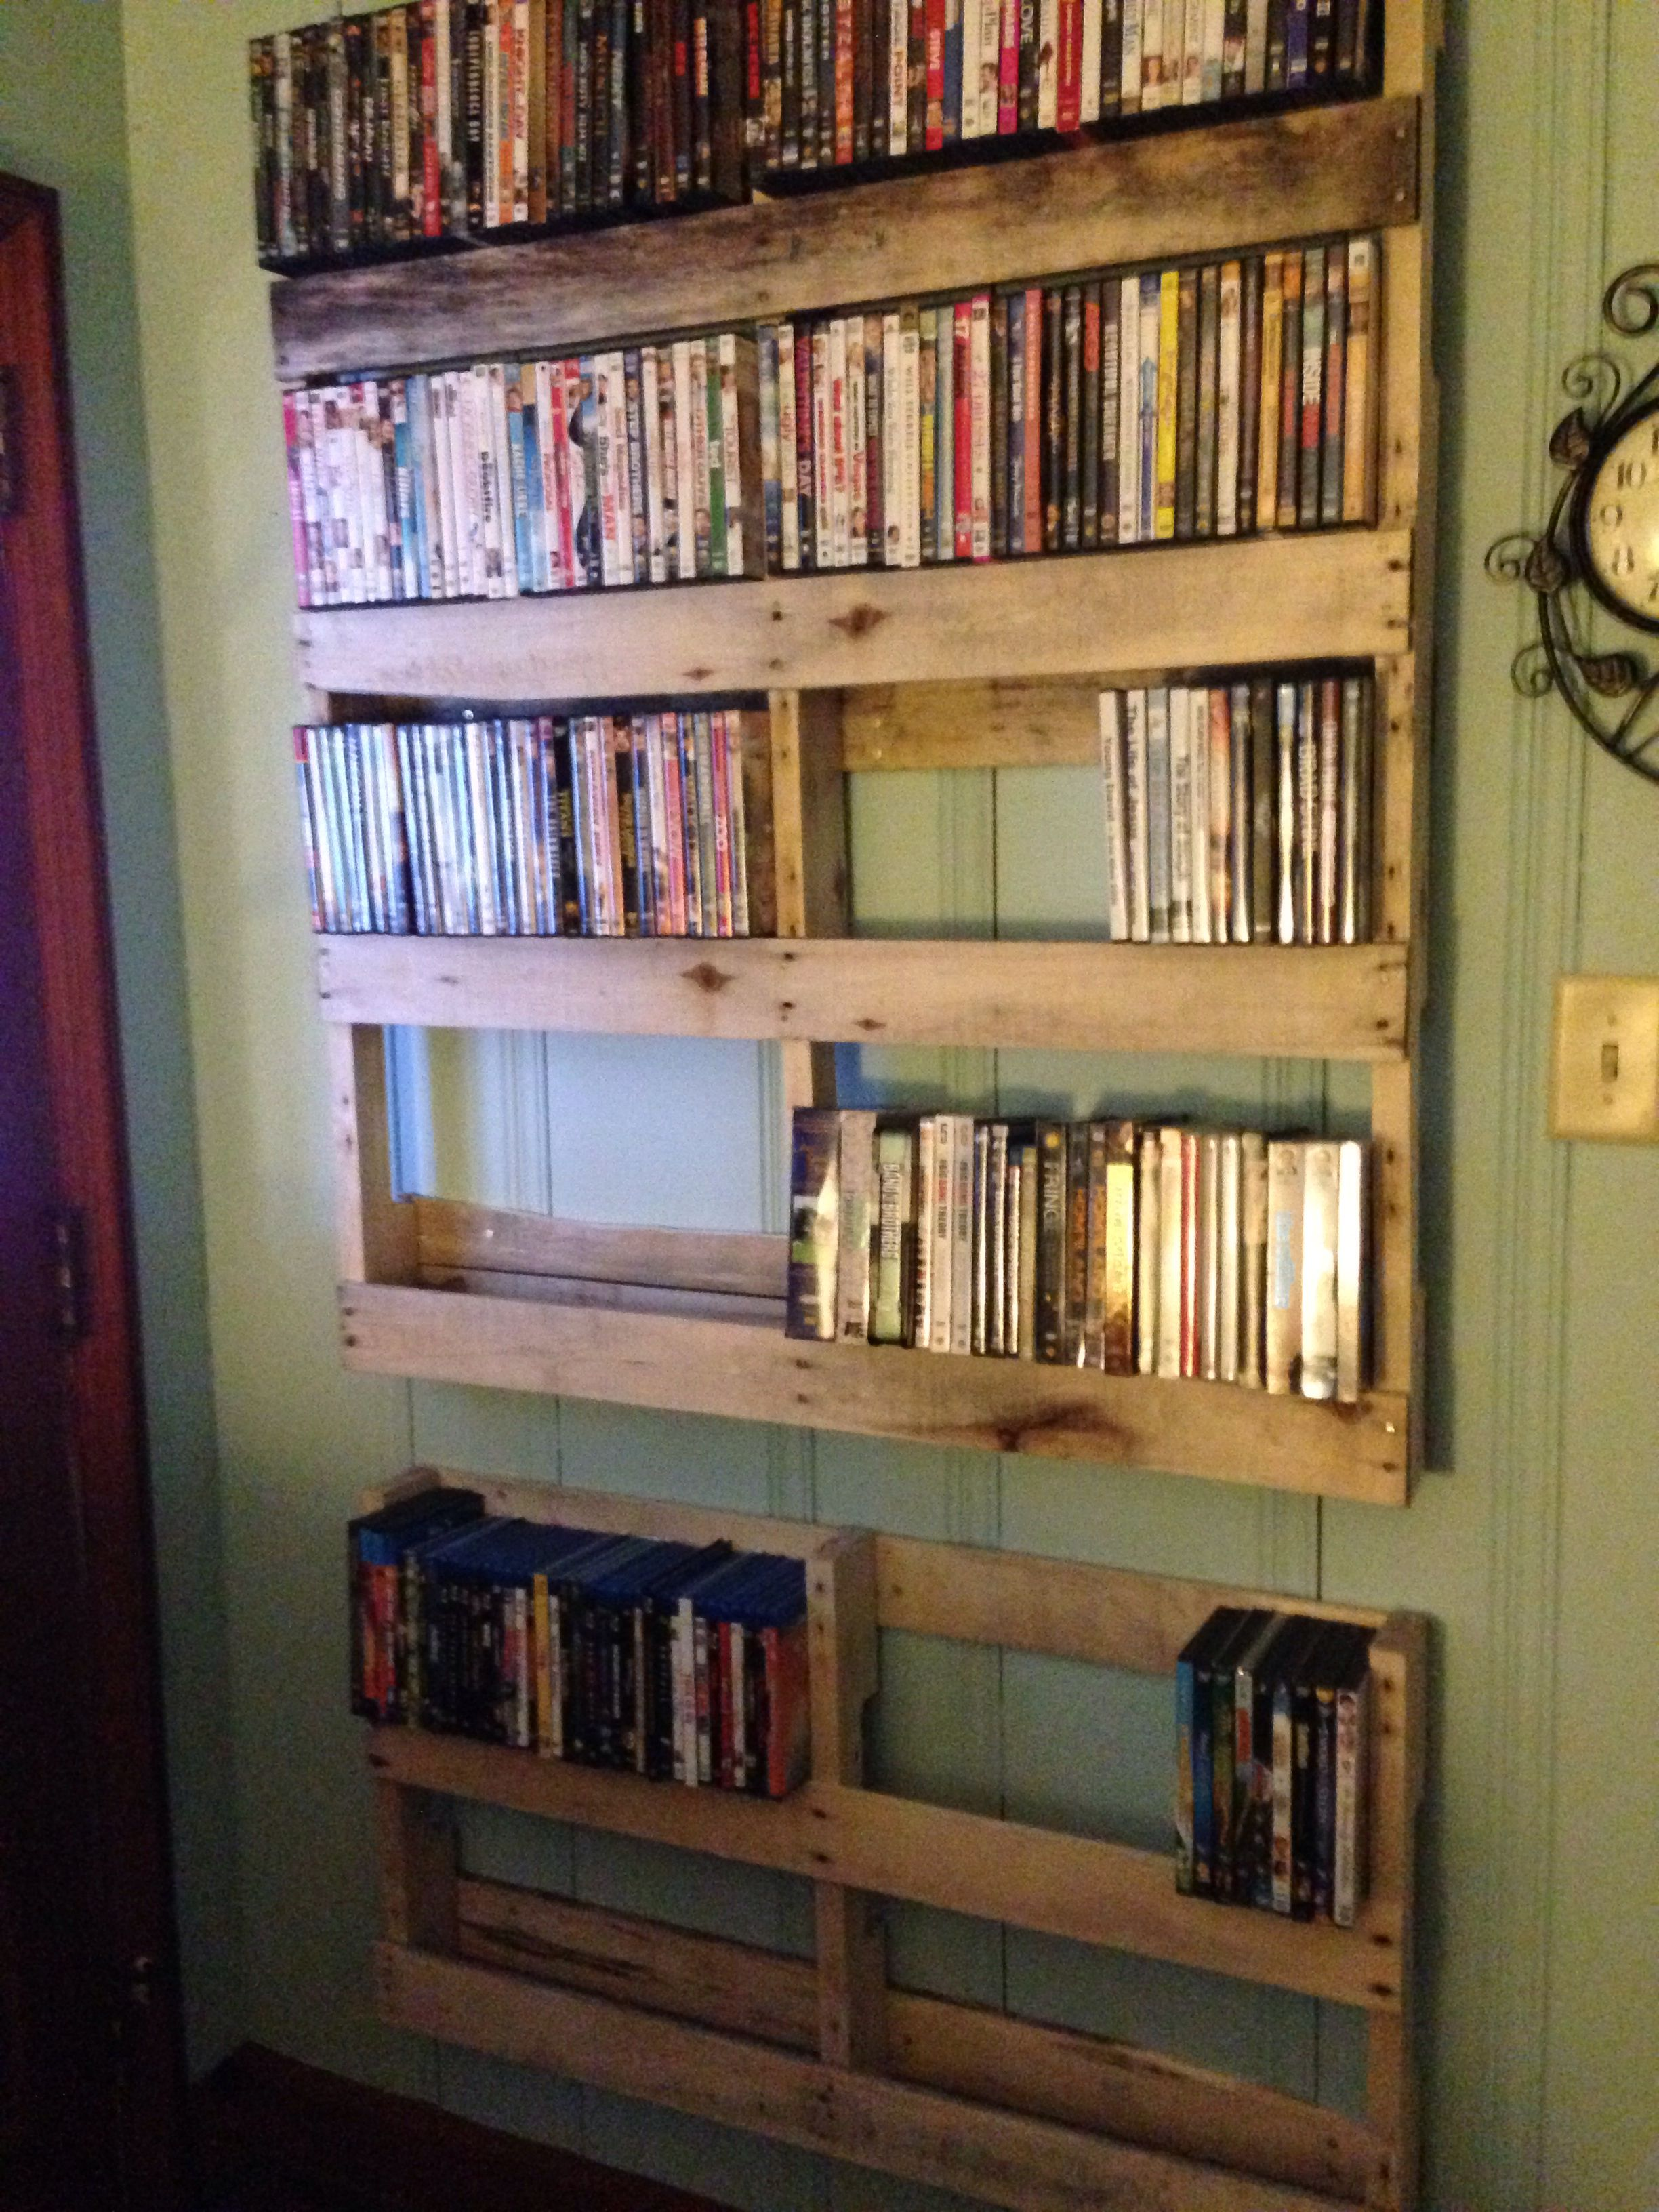 Dvd Storage Ideas DVD storage CD storage dvd storage cabinet #dvd #cd # storage & 15+ Unique Stylish CD and DVD Storage Ideas | Storage Ideas ...